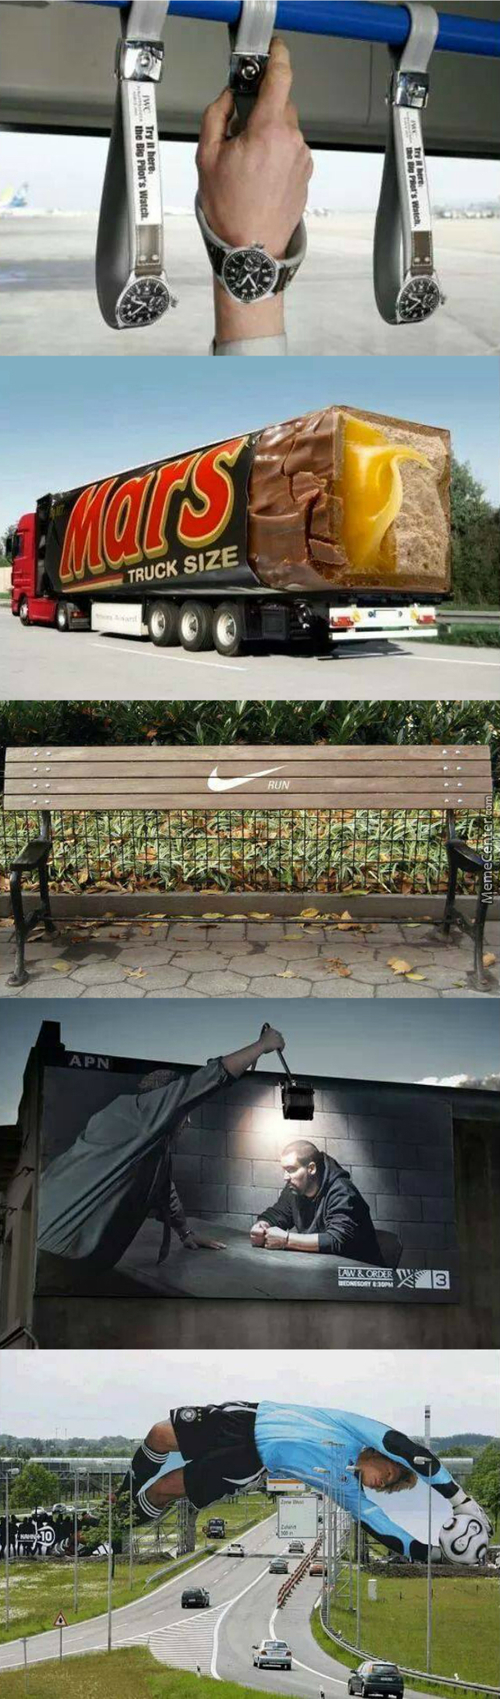 Awesome Examples Of Imaginative Advertising #2